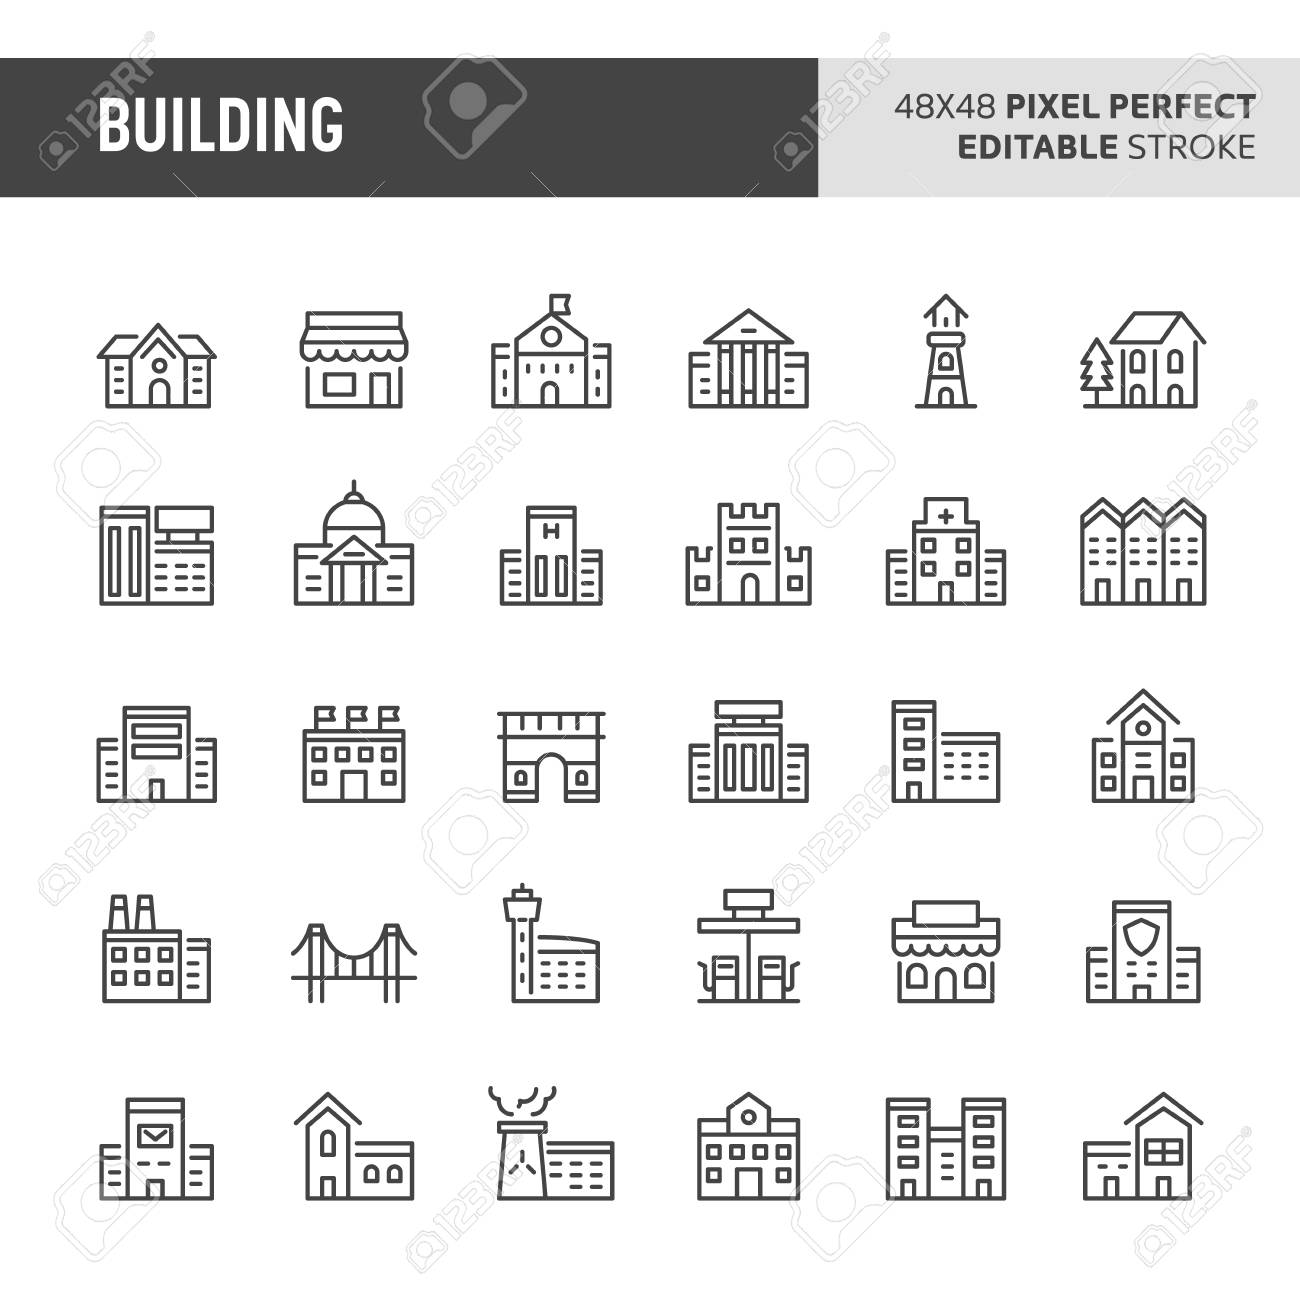 30 thin line icons associated with building (structure) and architectural